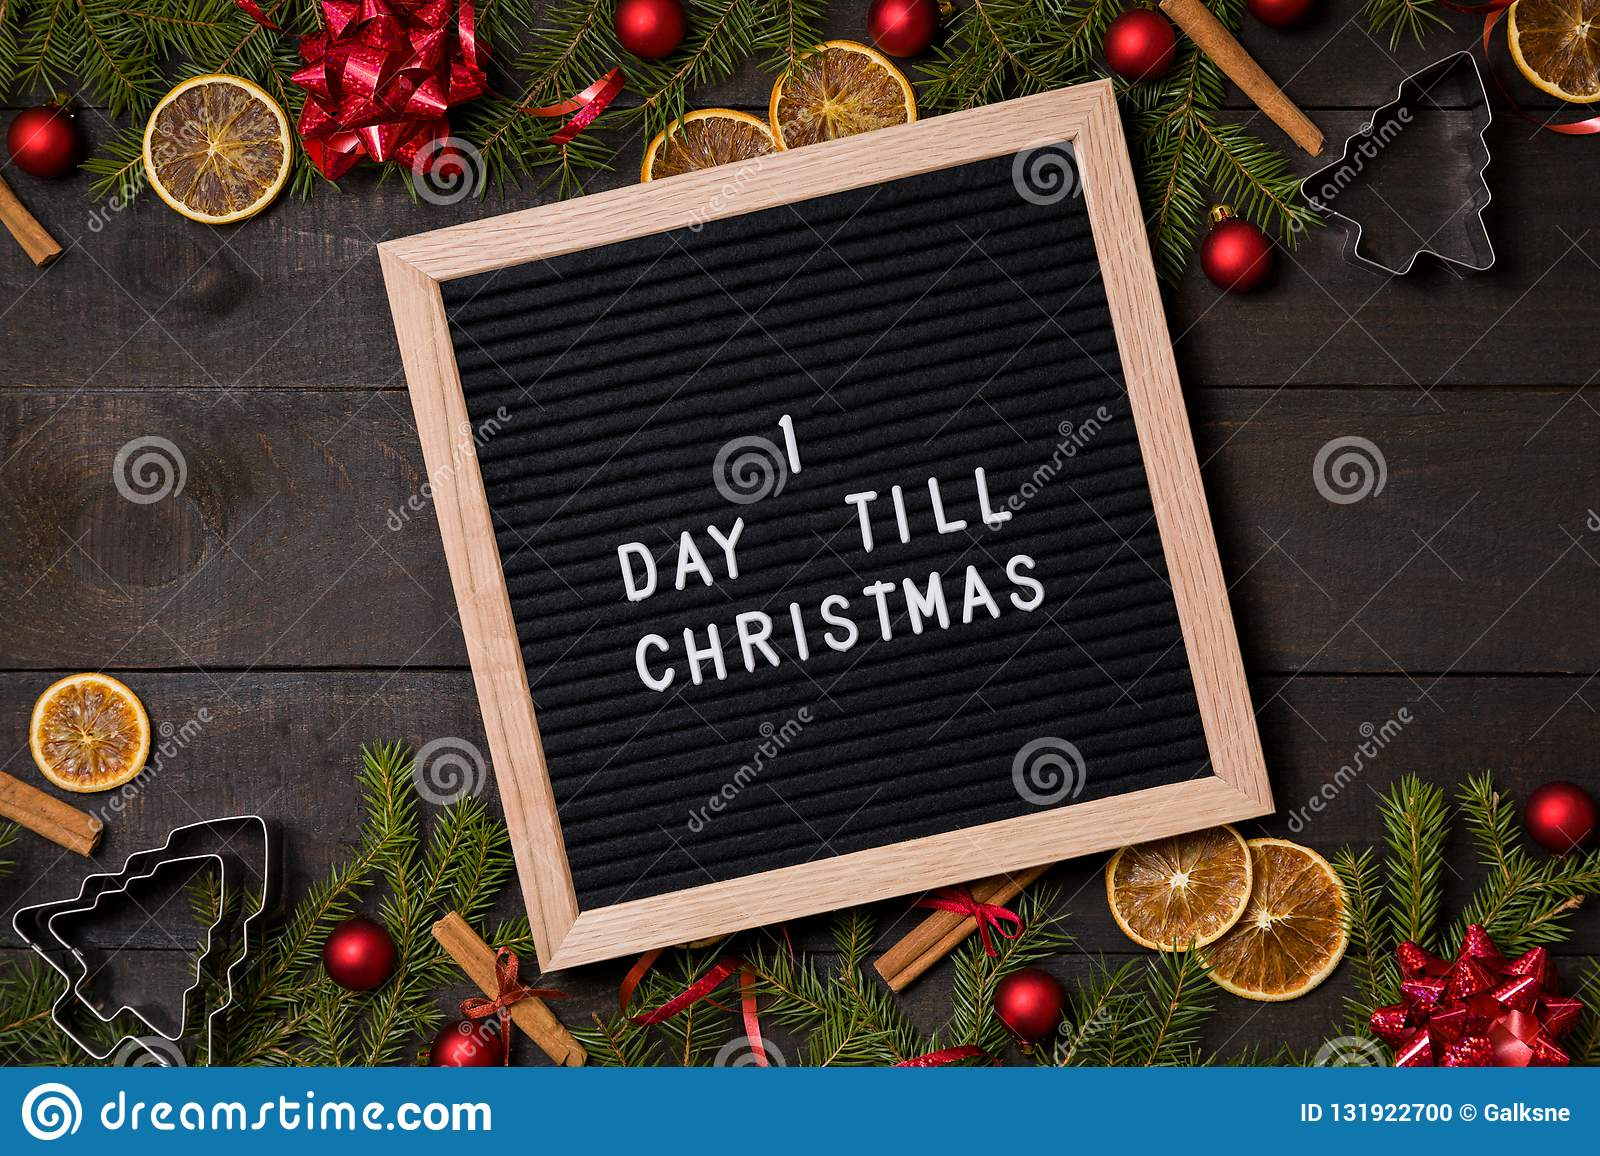 One Day till Christmas countdown letter board on dark rustic wood